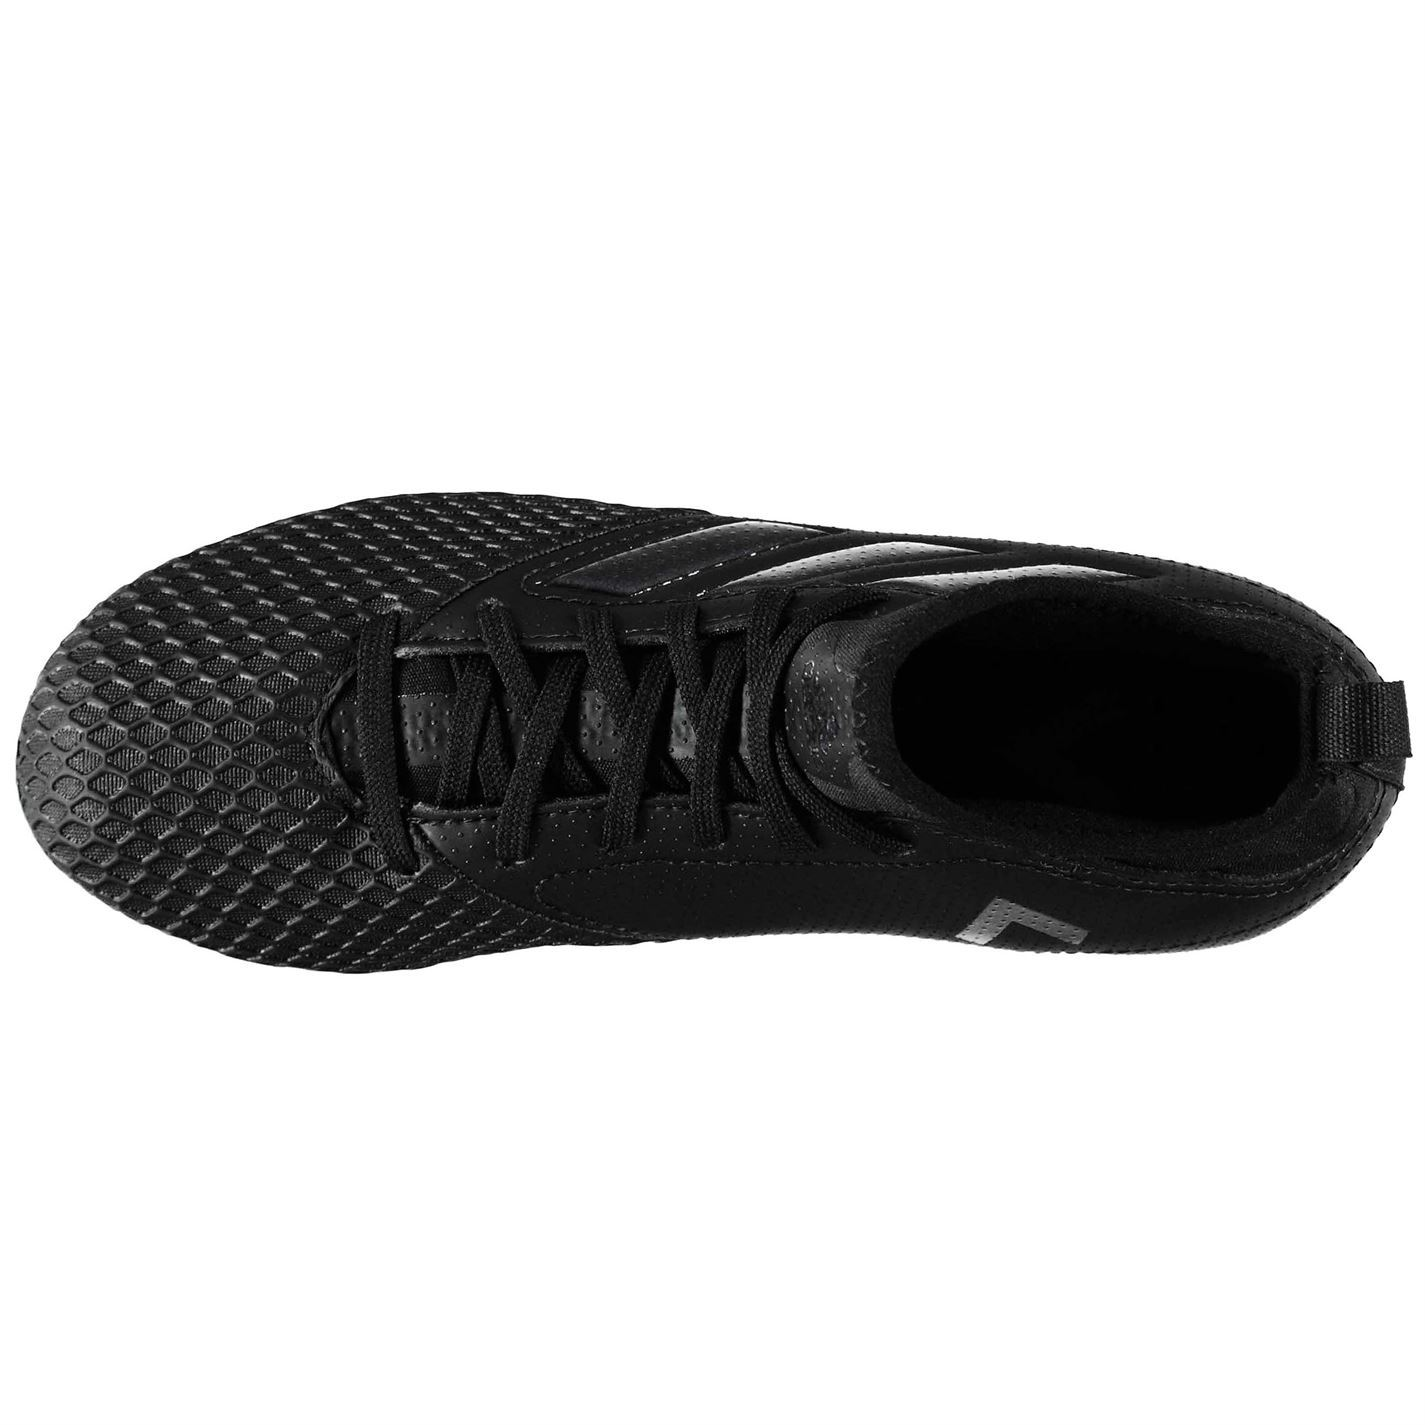 watch 5bba5 d70ea Details about adidas Ace 17.3 Primemesh Firm Ground Football Boots Juniors  Black Soccer Cleats